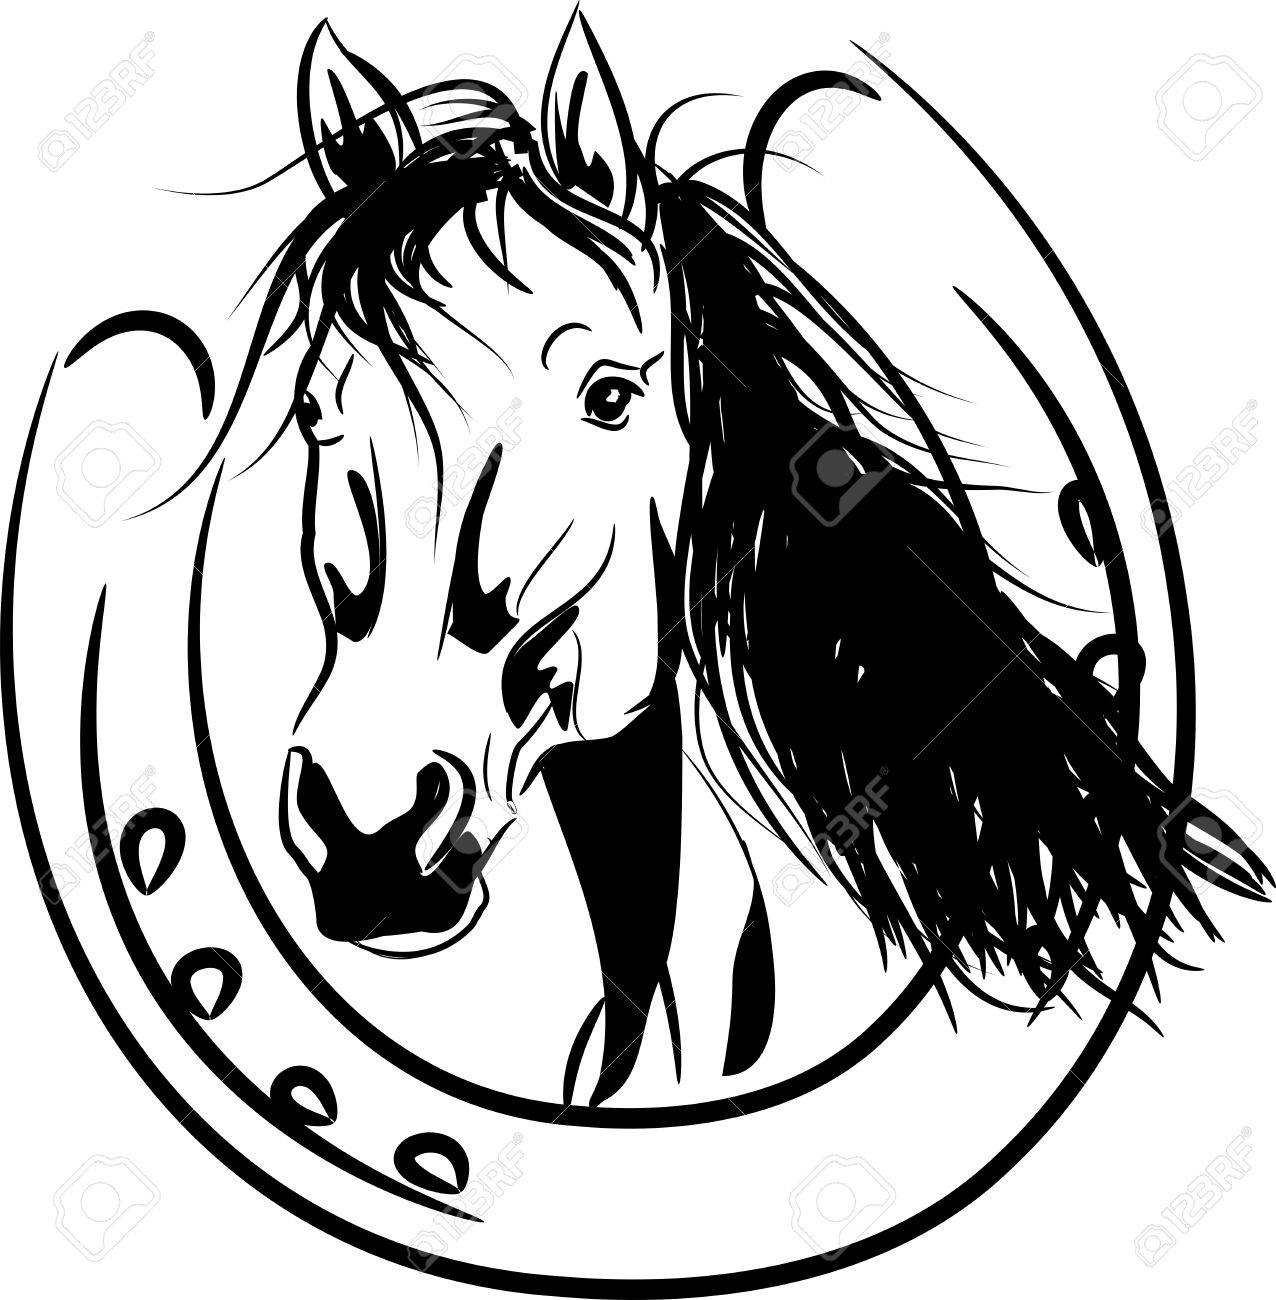 1276x1300 Vector Illustration Of Horse Head In Golden Horseshoe Royalty Free